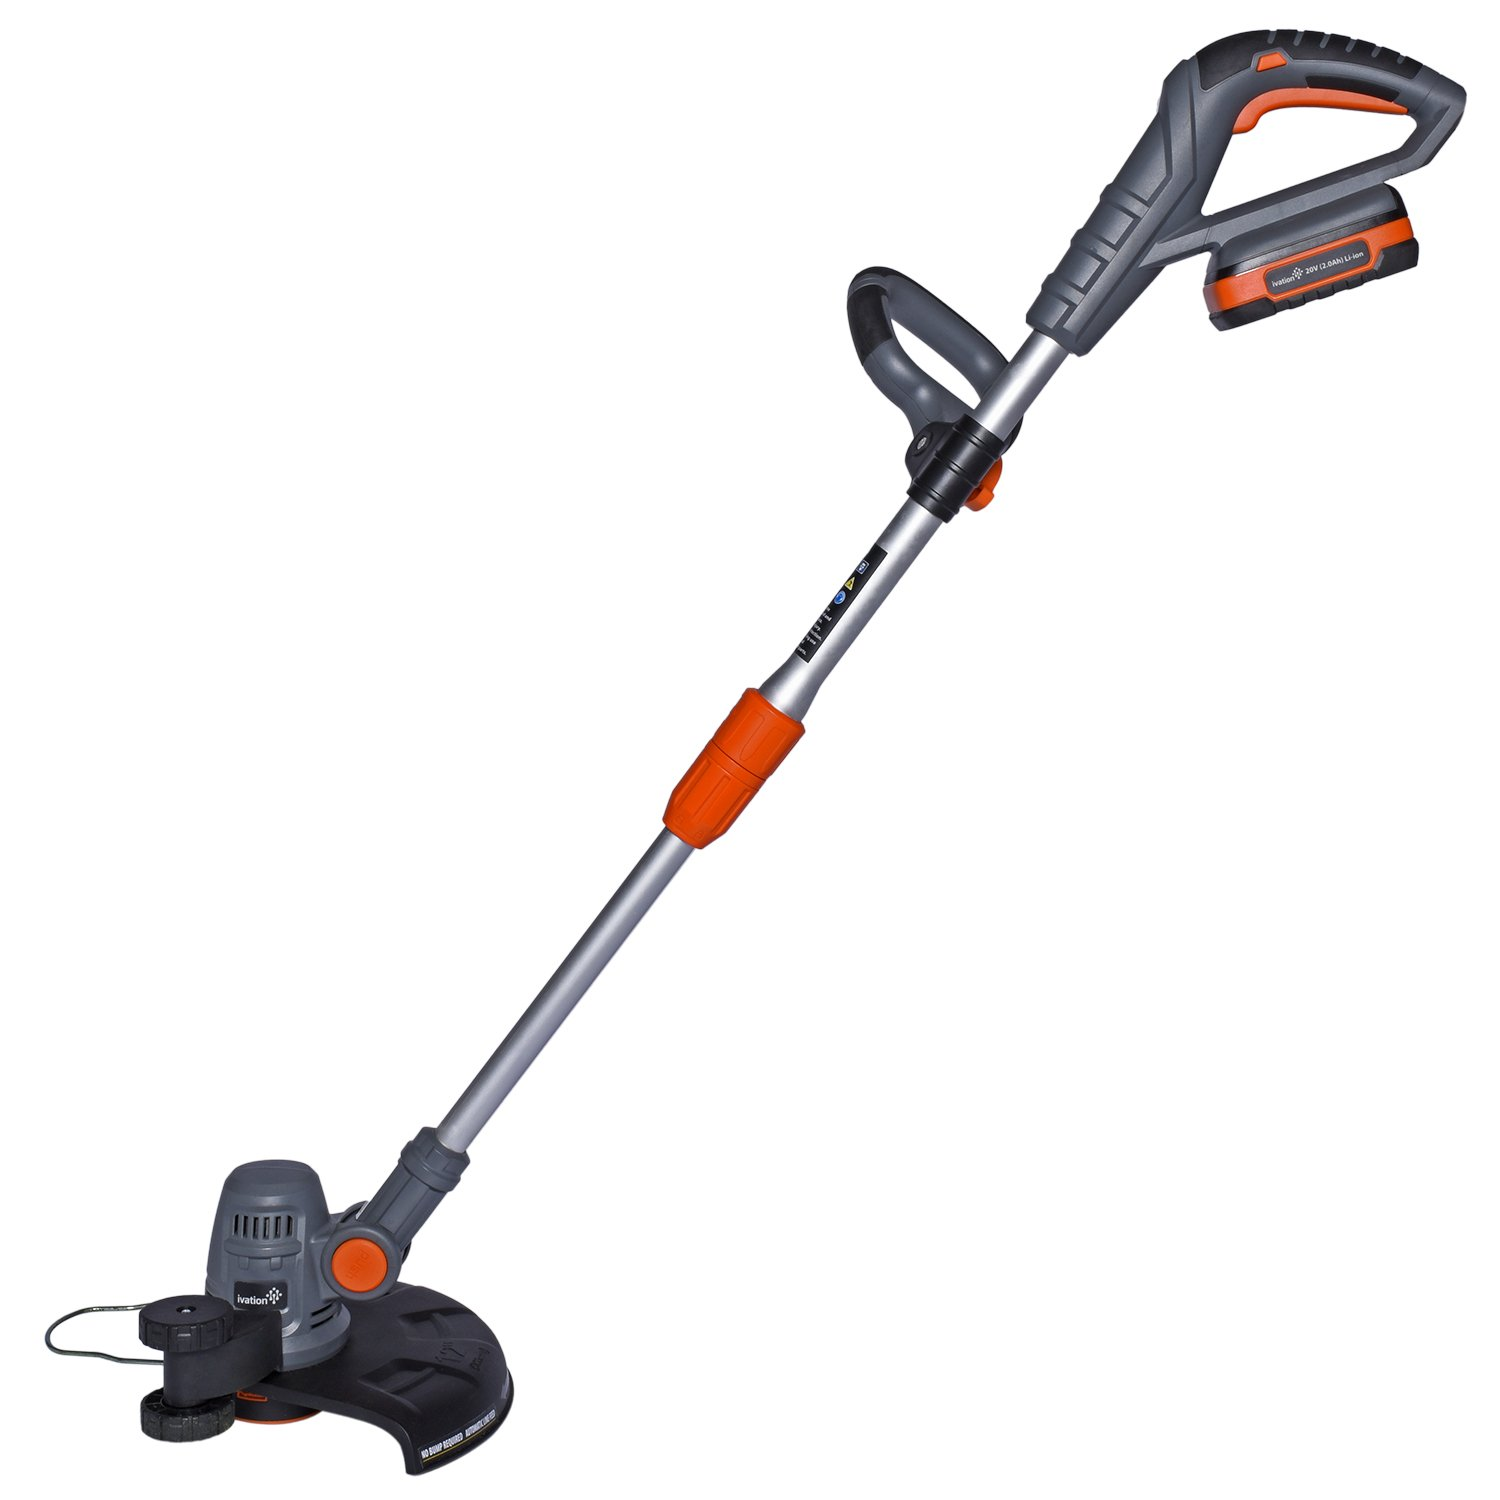 Ivation 20V 2.0AH Cordless Grass String Trimmer & Edger – Easy Feed - Includes Extra Battery Pack for Easy Cord-Free Trimming & Lawn Edging IVAGT20V